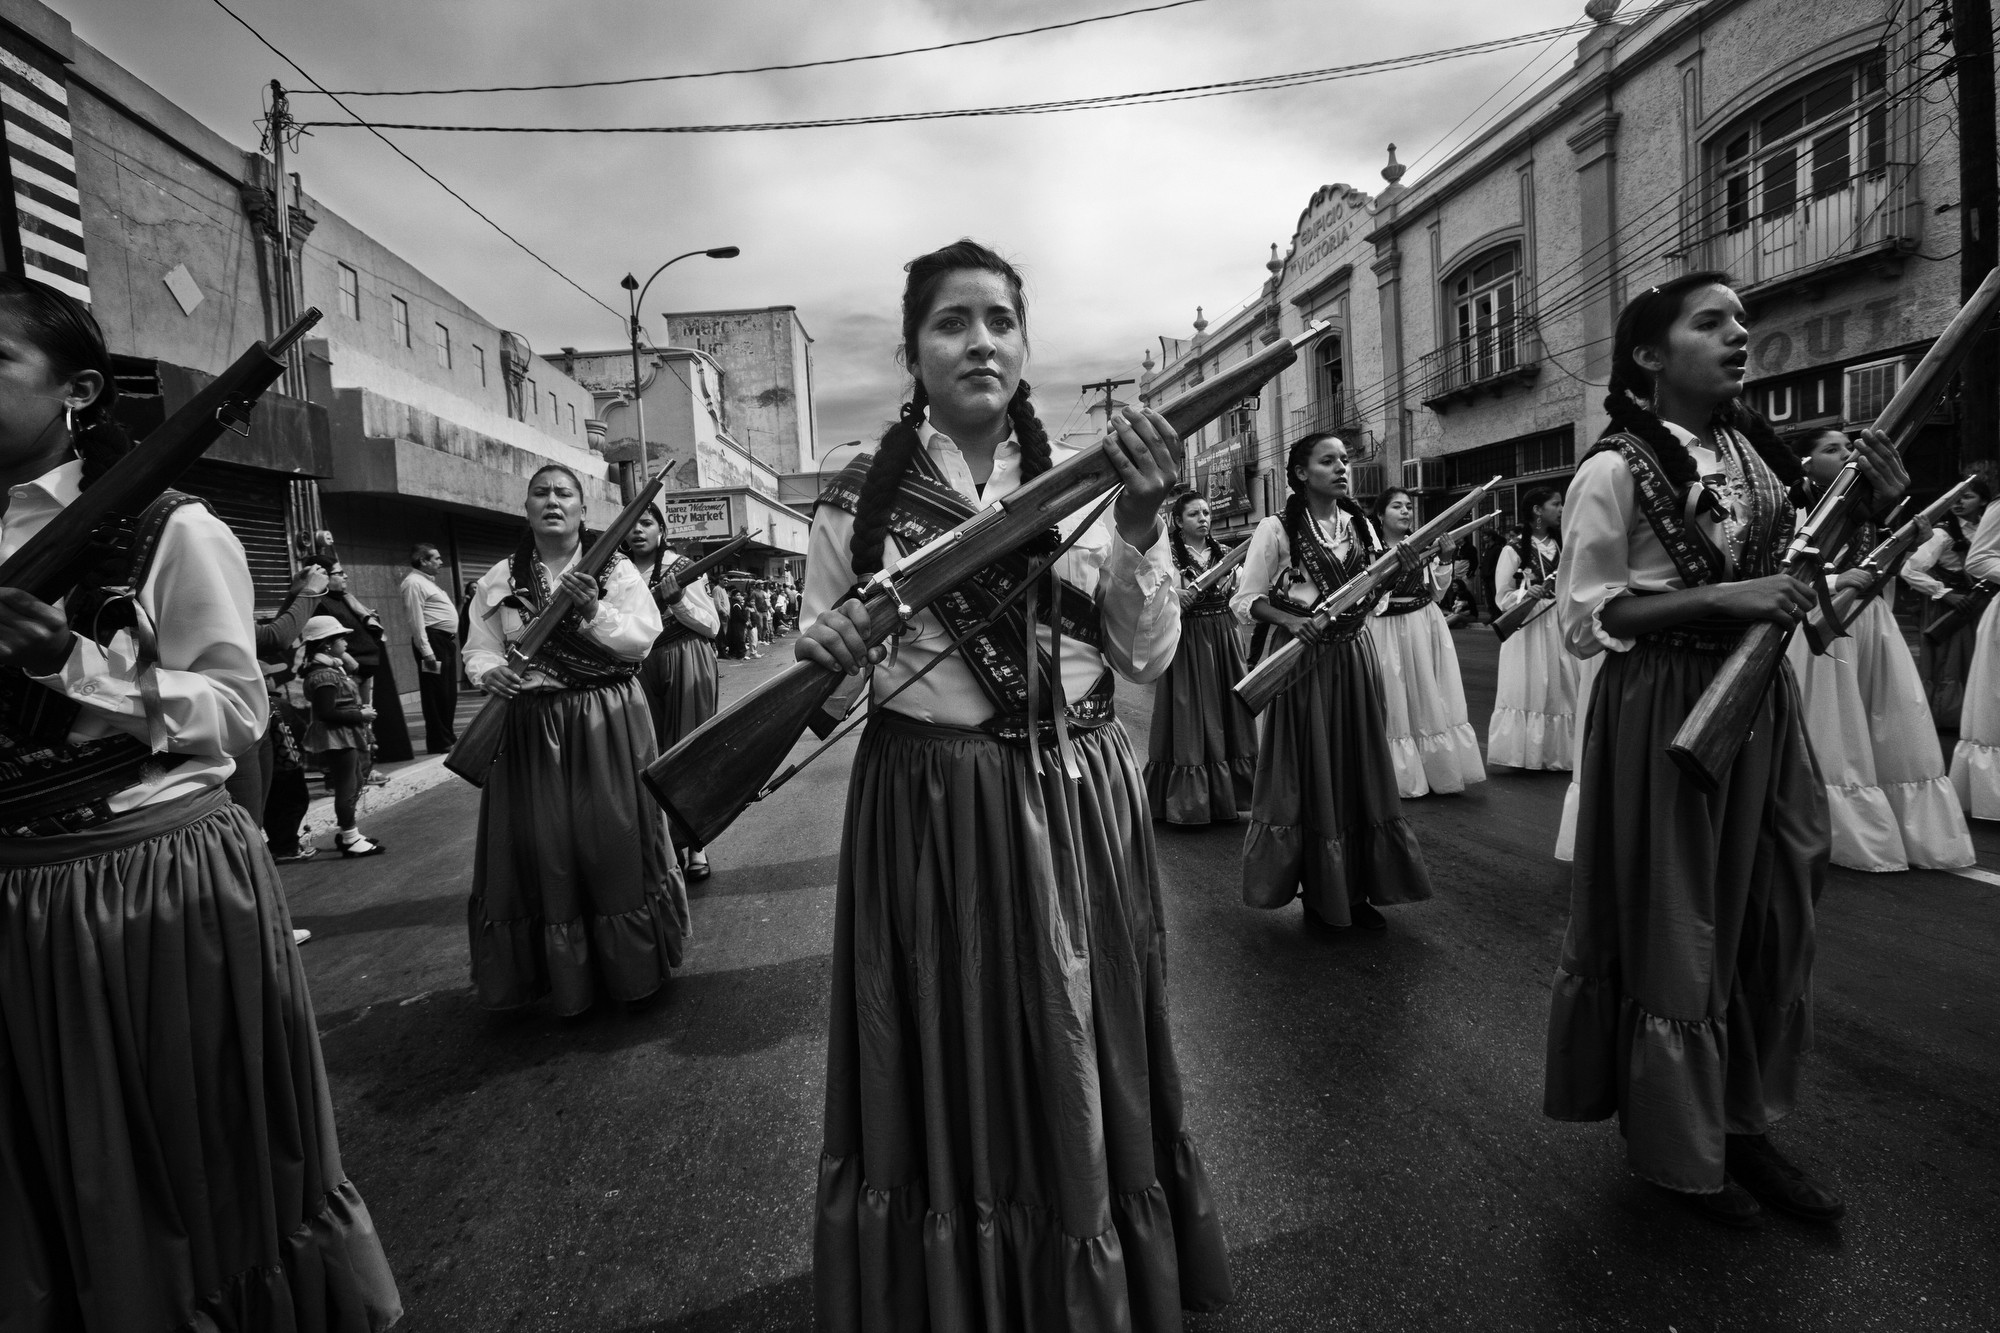 feminists of the mexican revolution Las soldaderas were women fighters who made significant contributions to both the federal and rebel armies of the mexican revolution though few actually engaged in combat, their assistance to male soldiers in fighting the war were monumental.